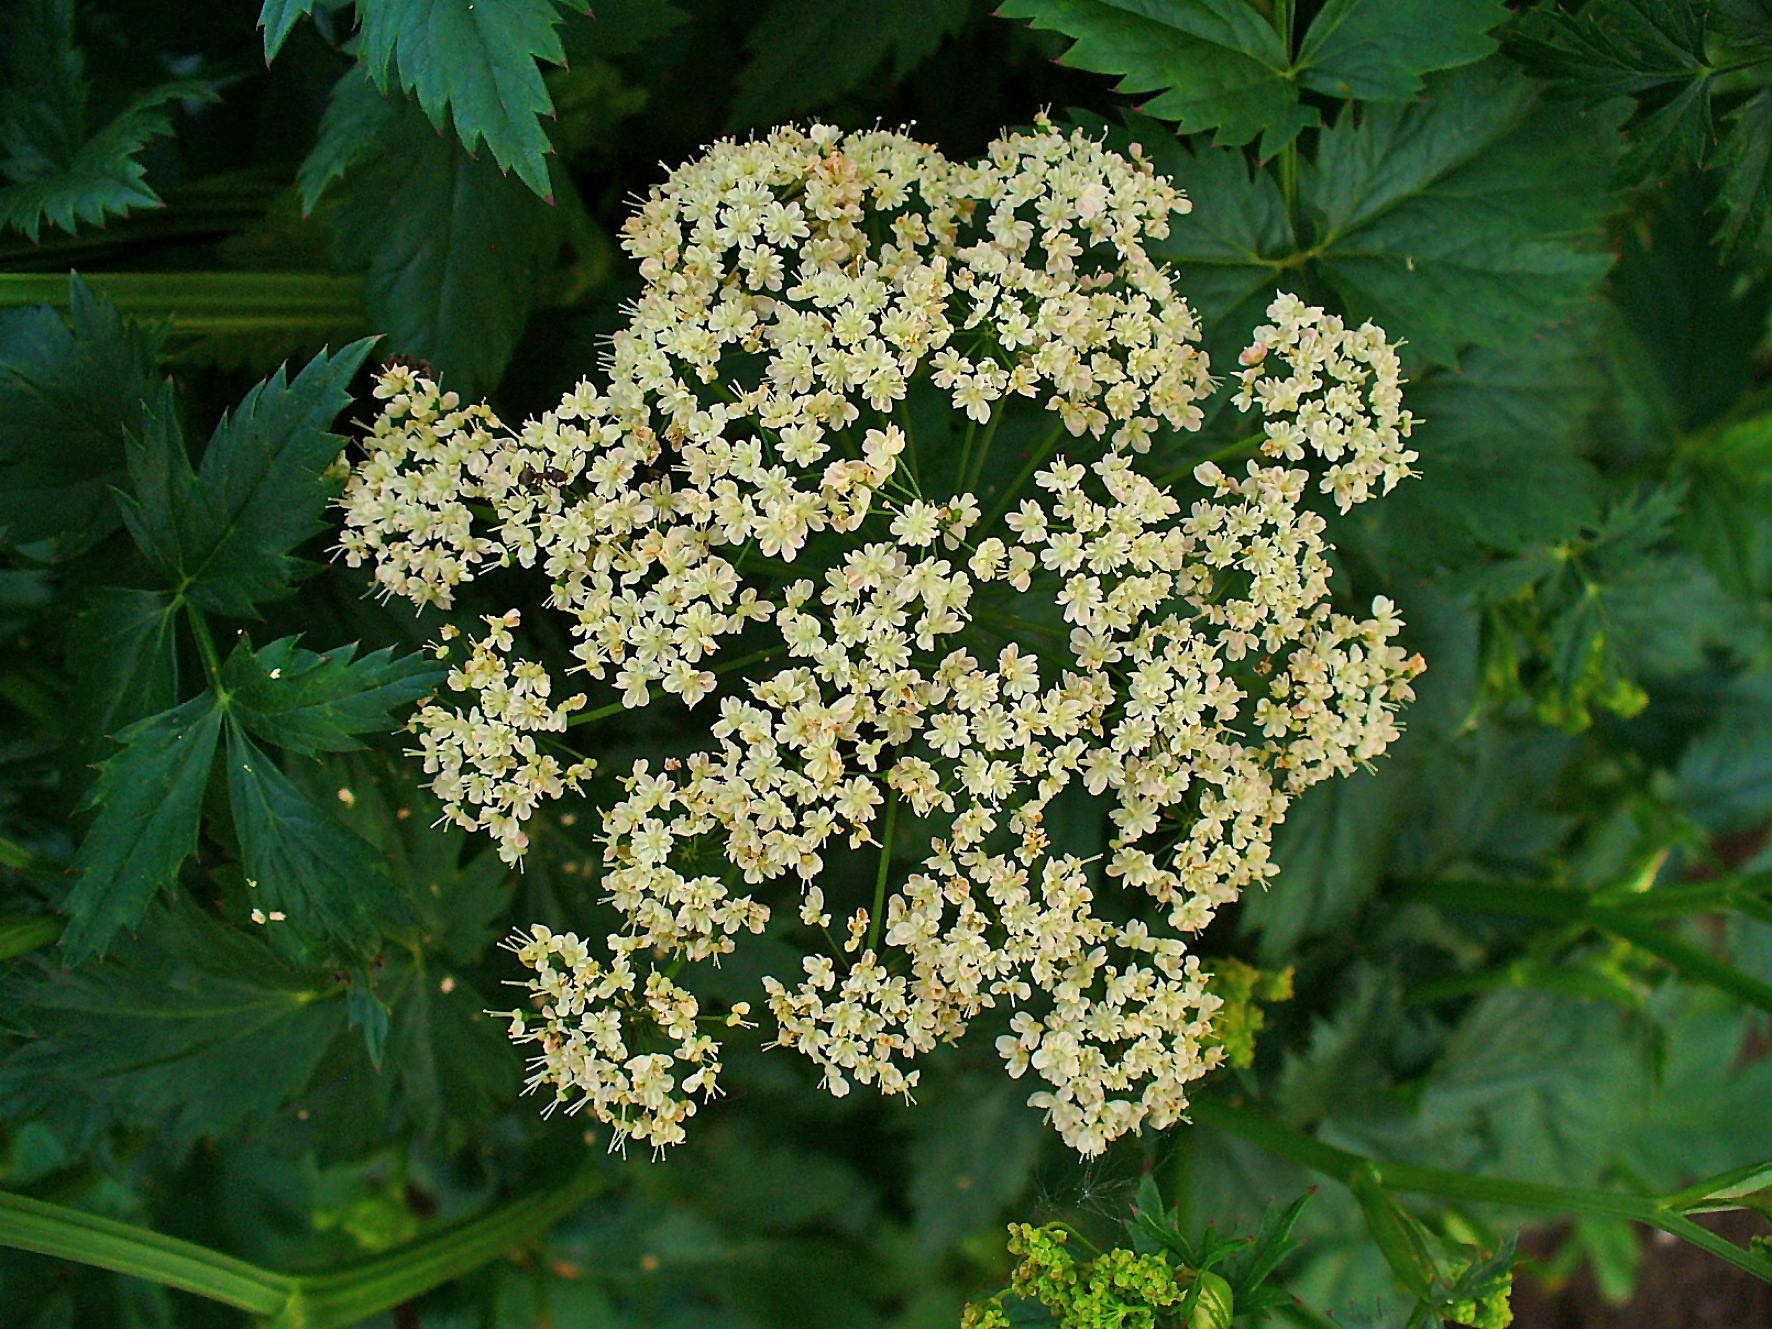 Pimpinella_major_002.JPG